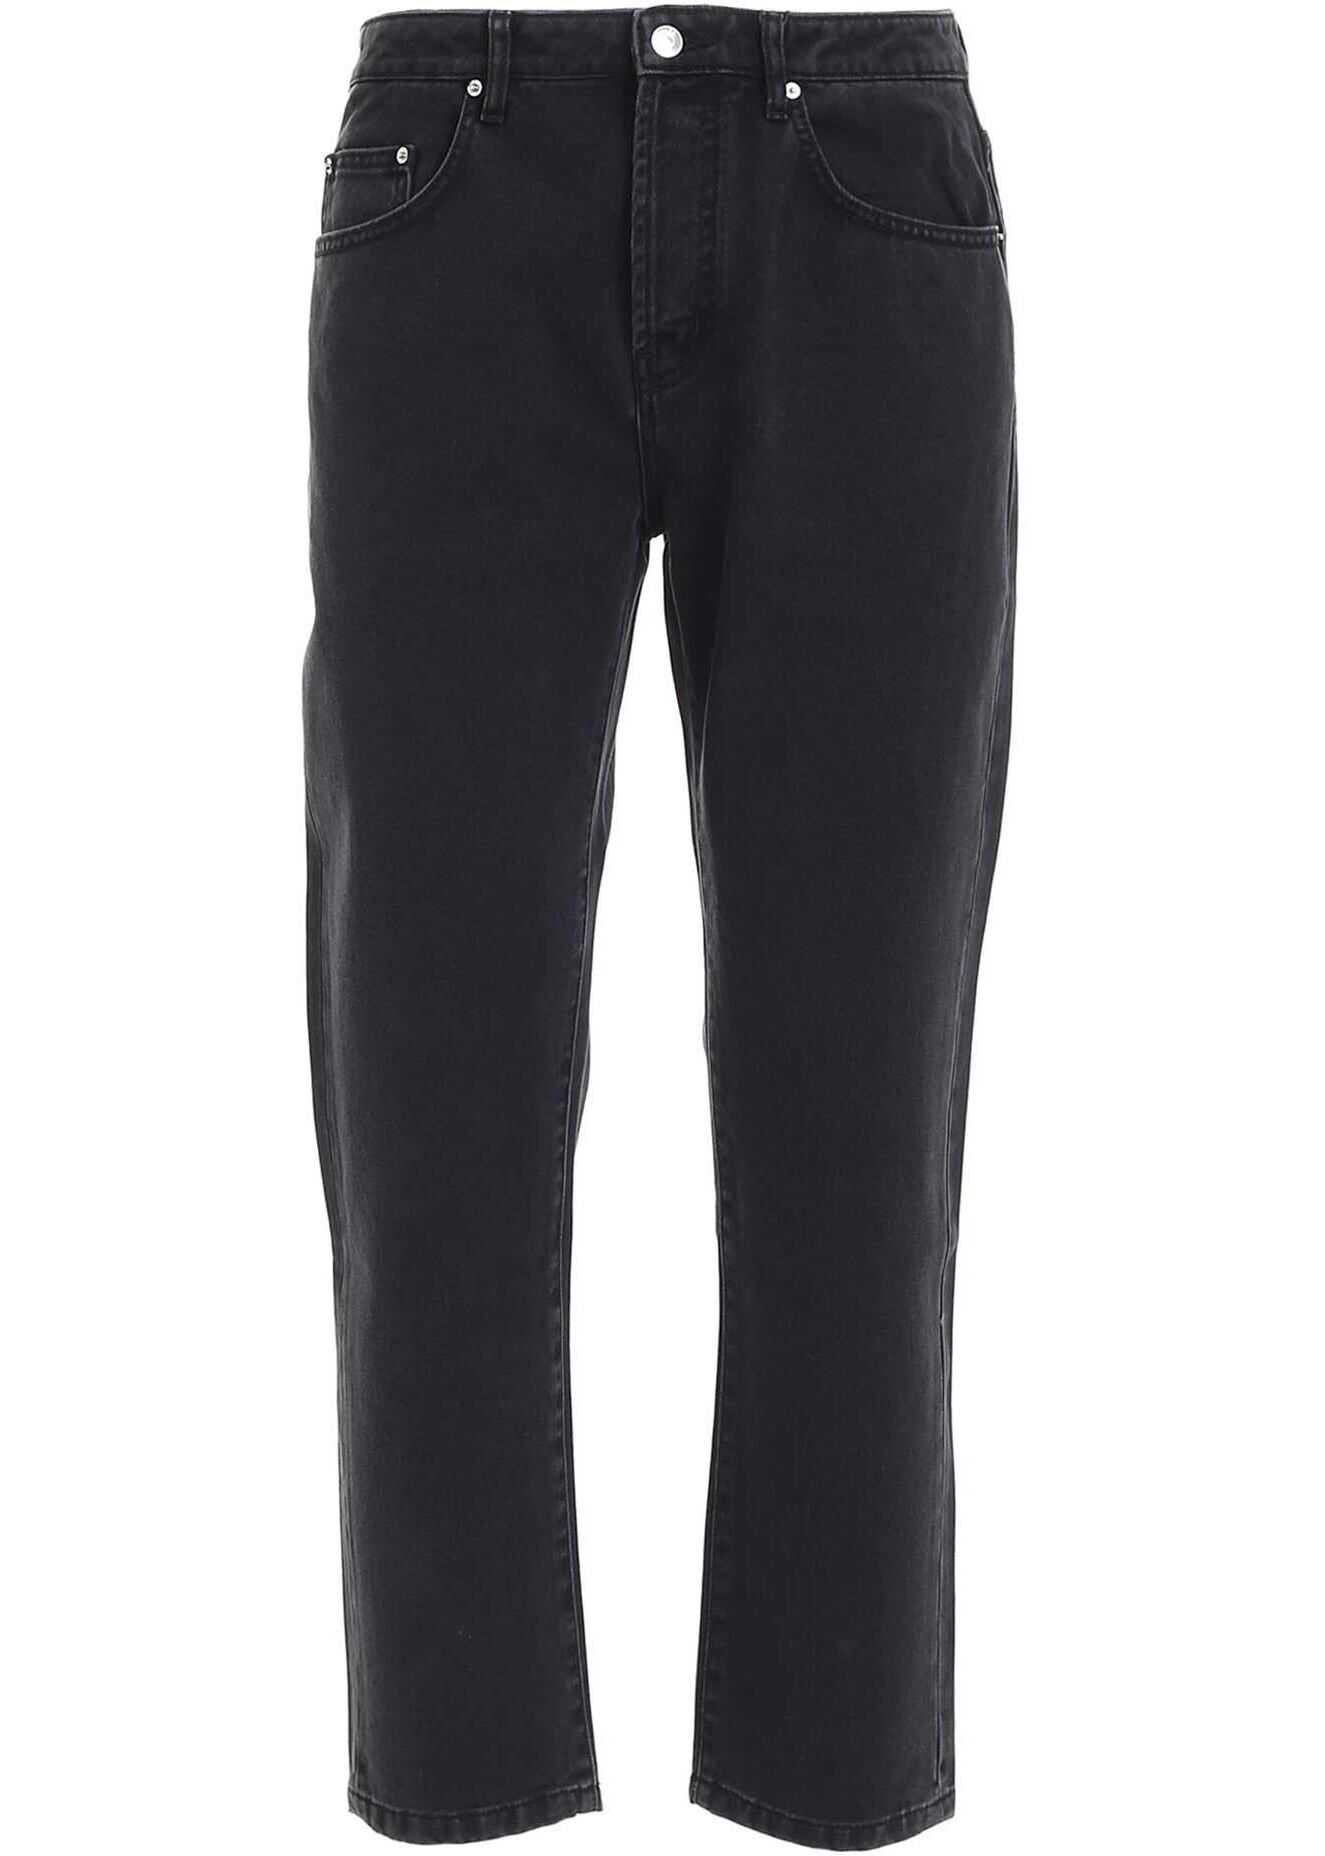 Kenzo Cropped Jeans In Black Black imagine